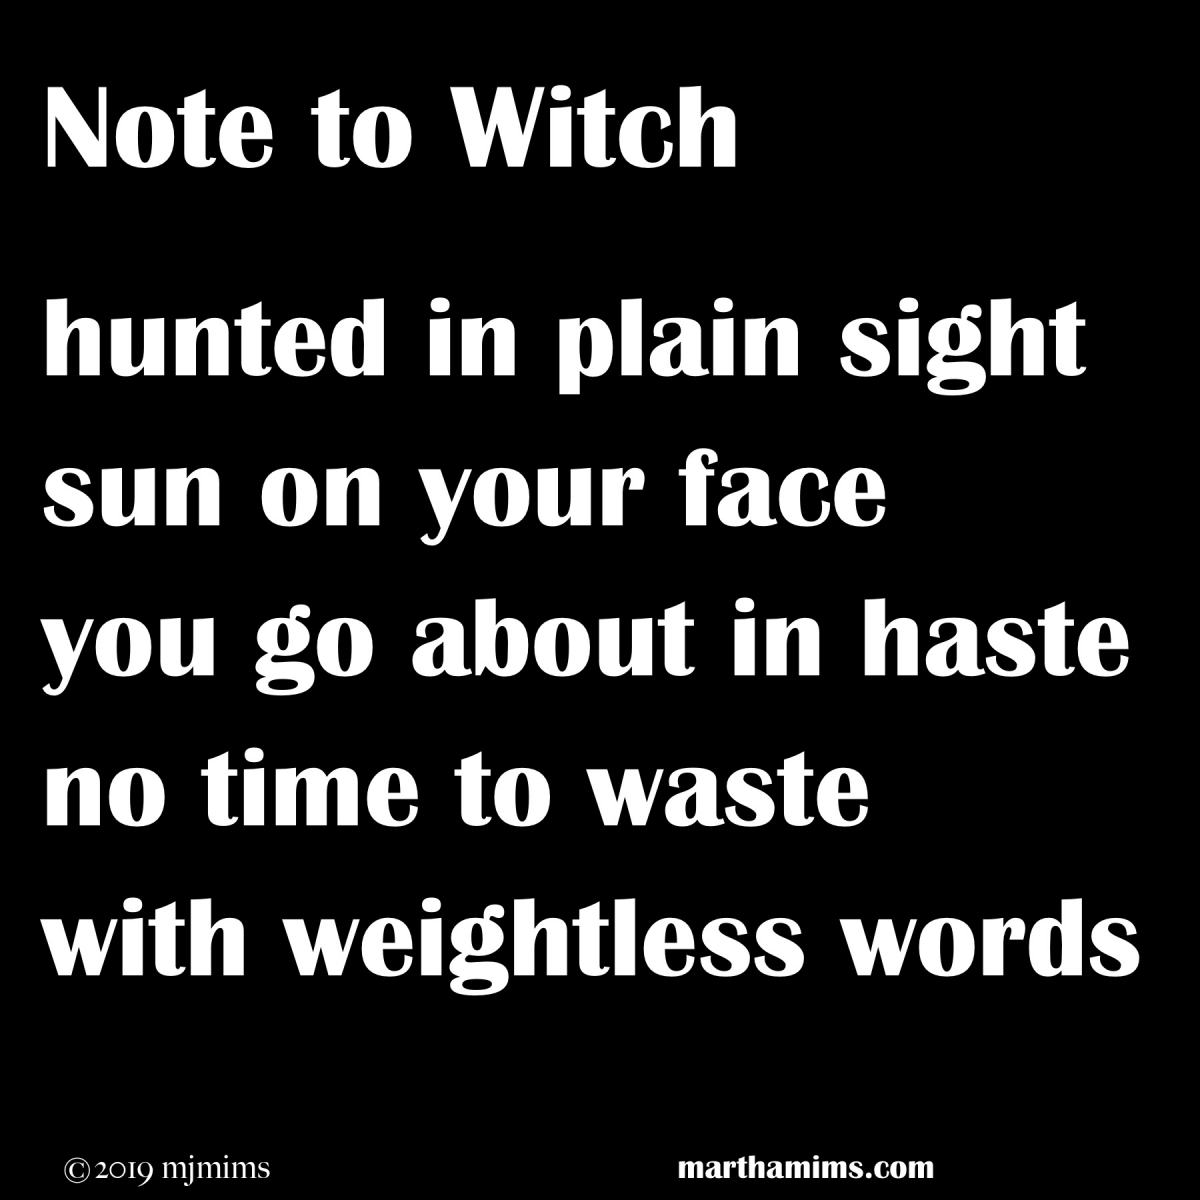 notetowitch